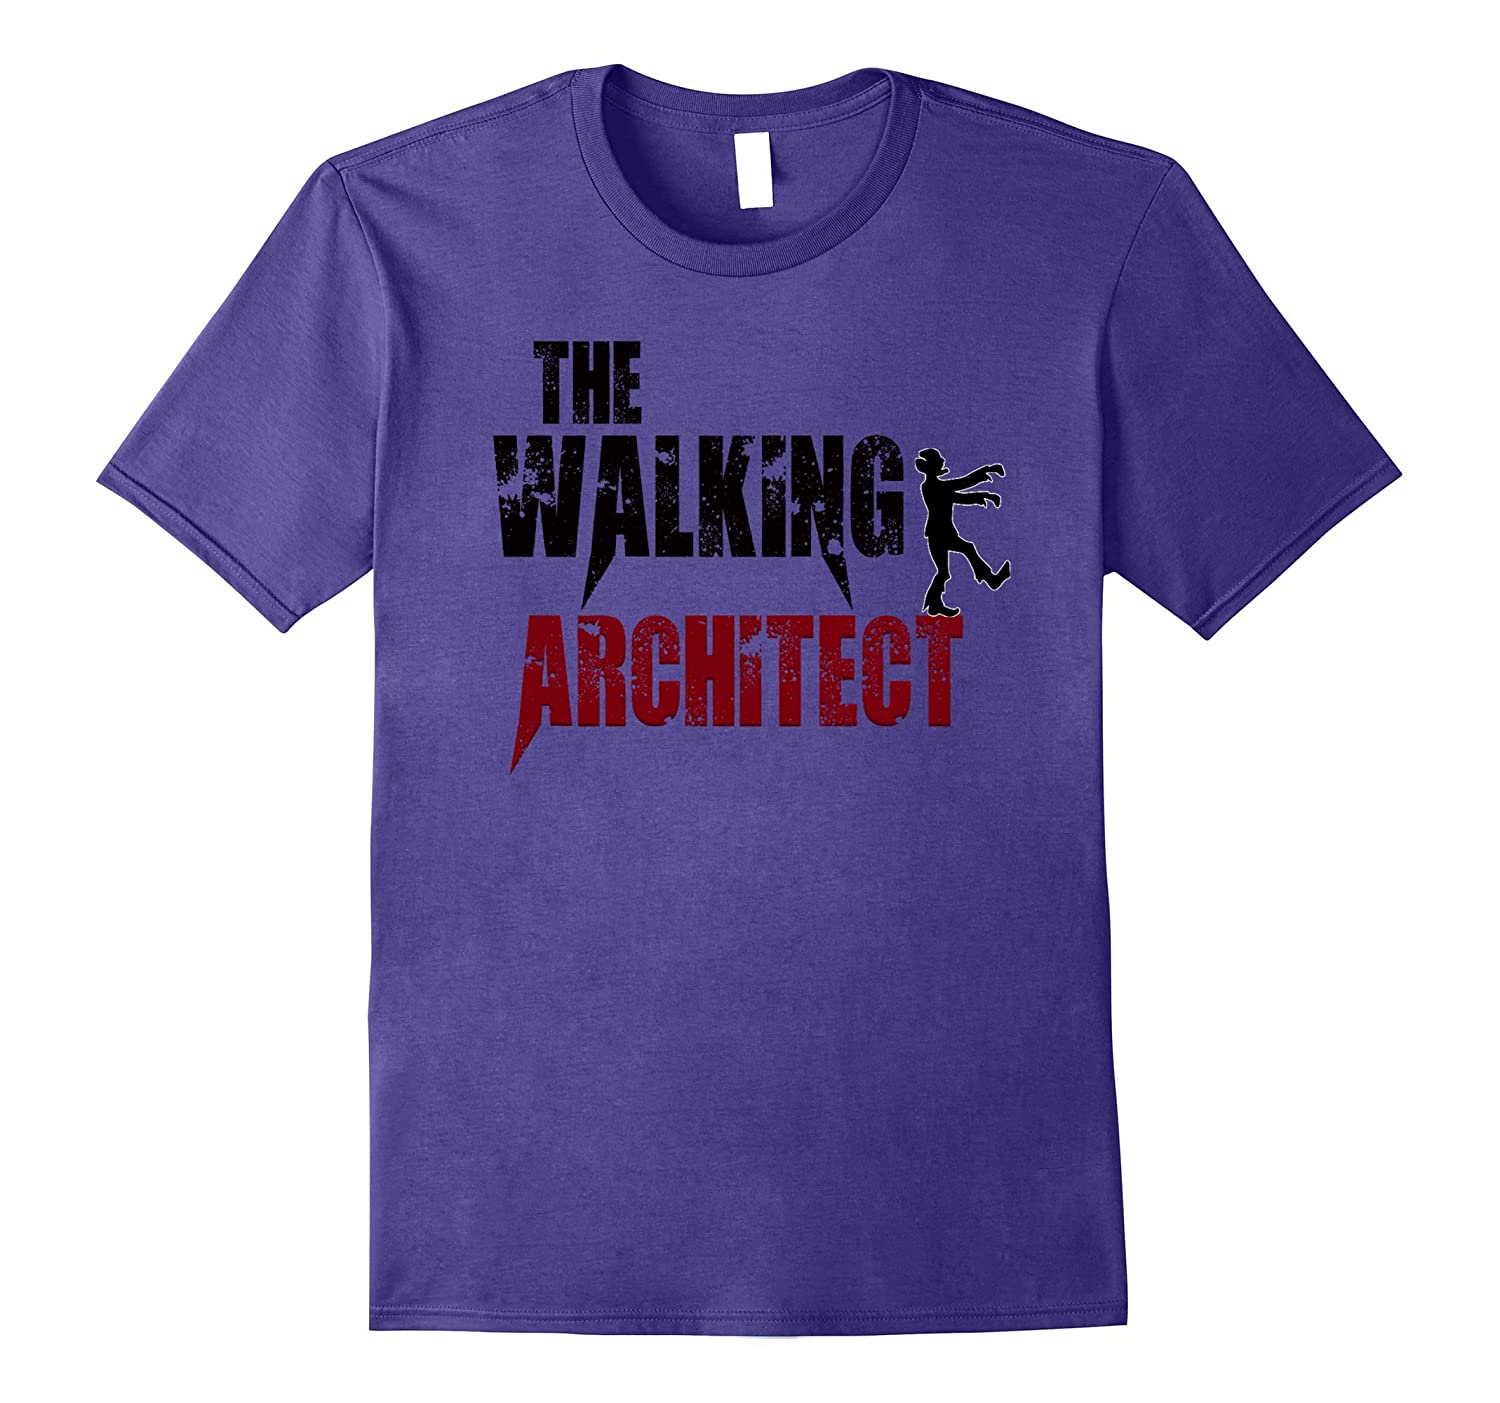 Architect gift t shirts walking Architecture zombies tee day-FL